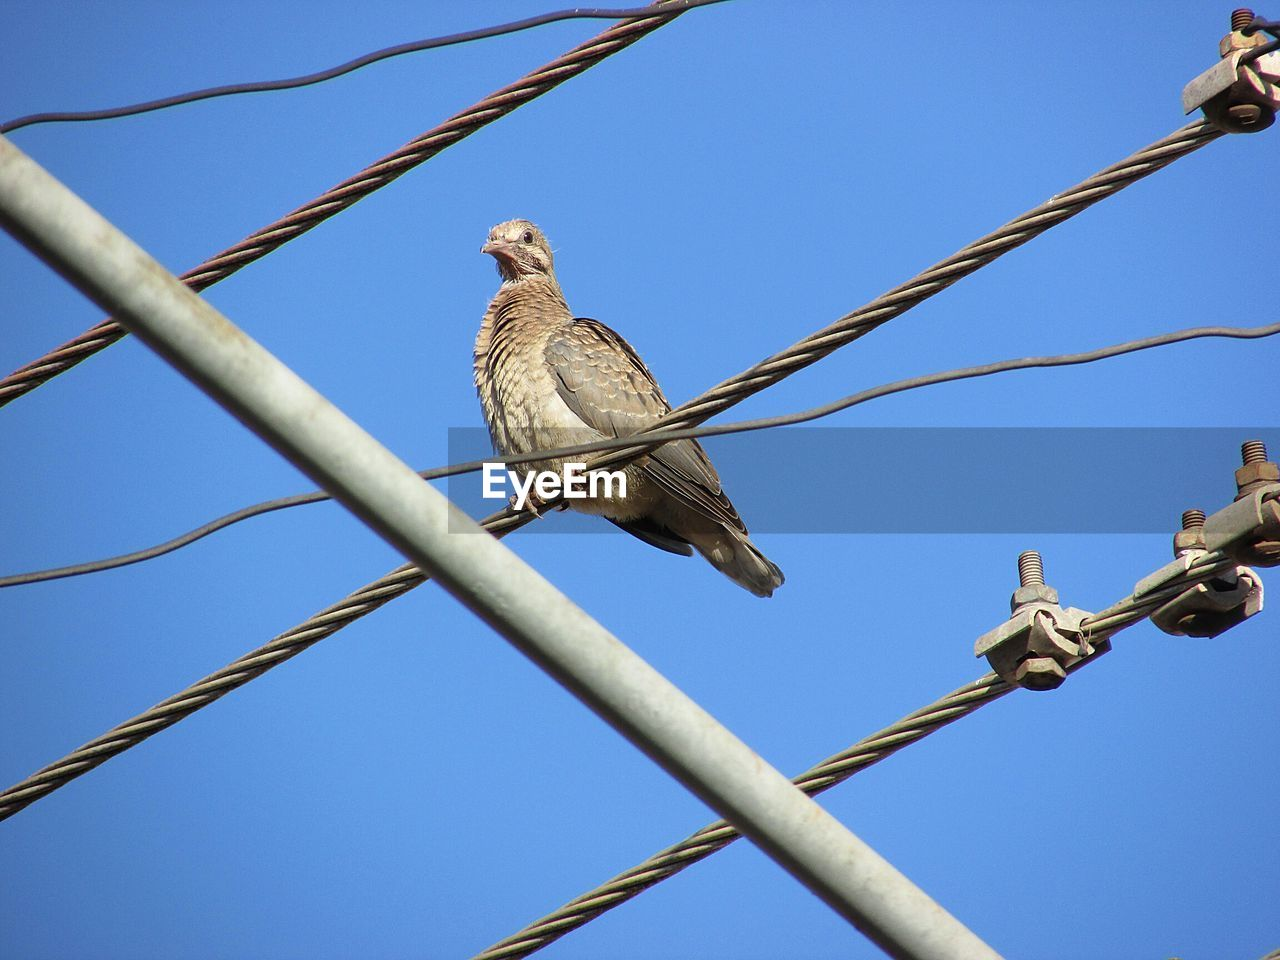 animal, bird, animal wildlife, vertebrate, animal themes, low angle view, animals in the wild, sky, perching, clear sky, blue, one animal, nature, no people, day, cable, tree, branch, power line, outdoors, electricity, mourning dove, power supply